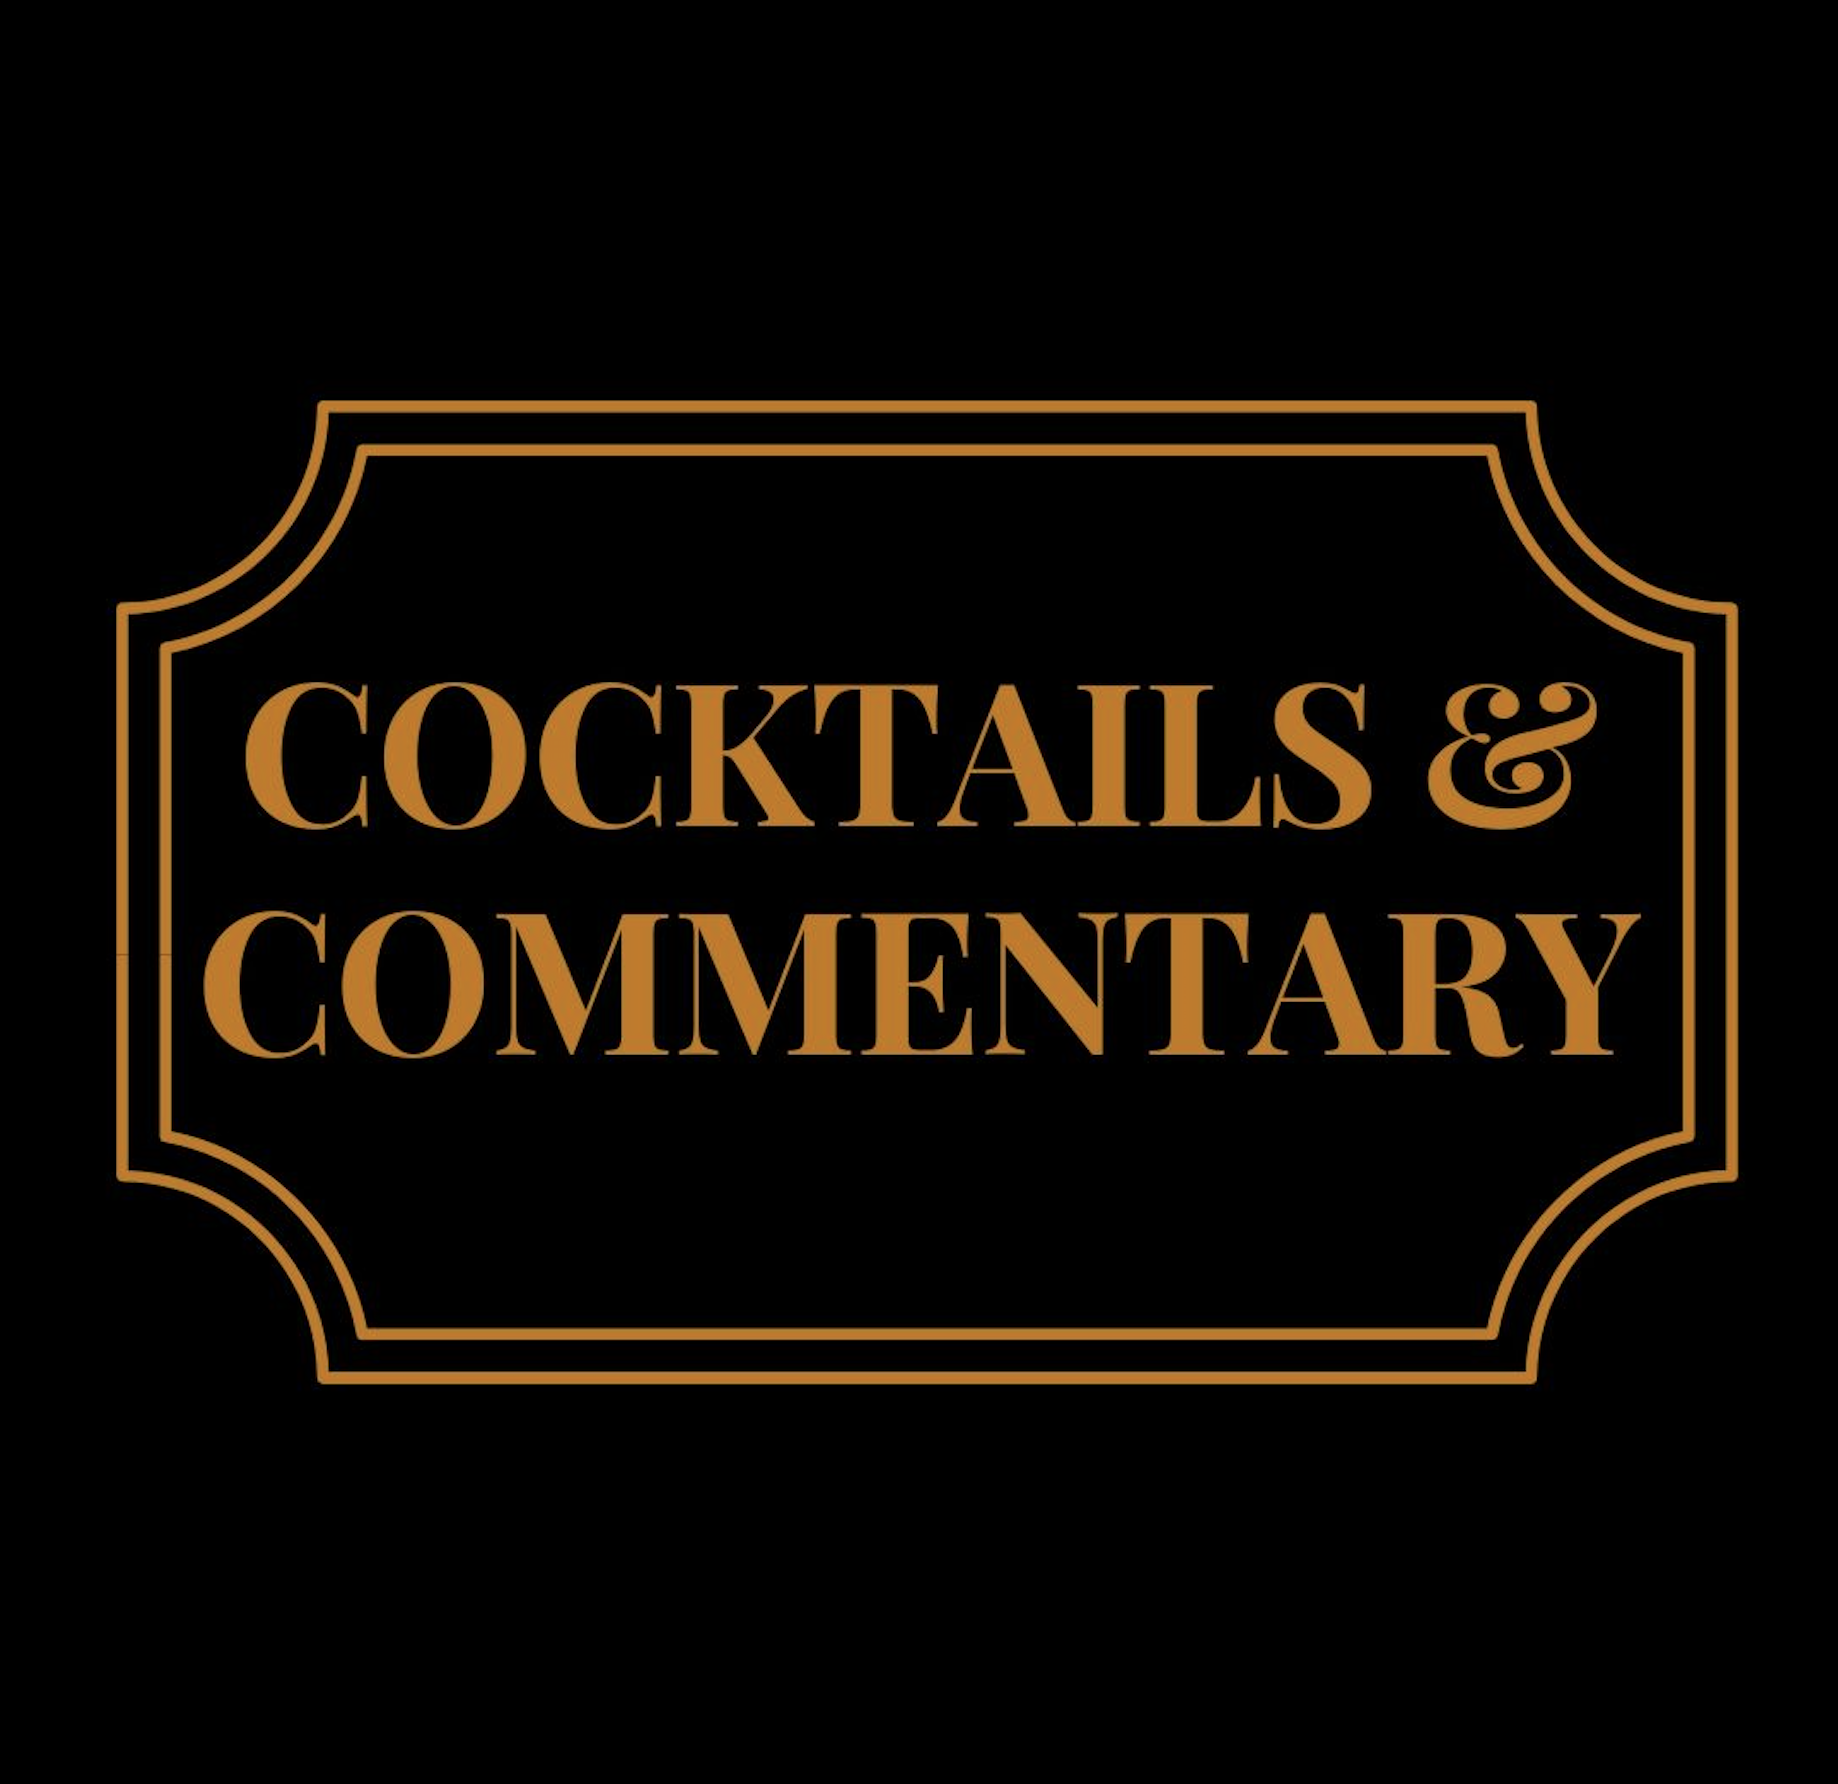 Cocktails & Commentary